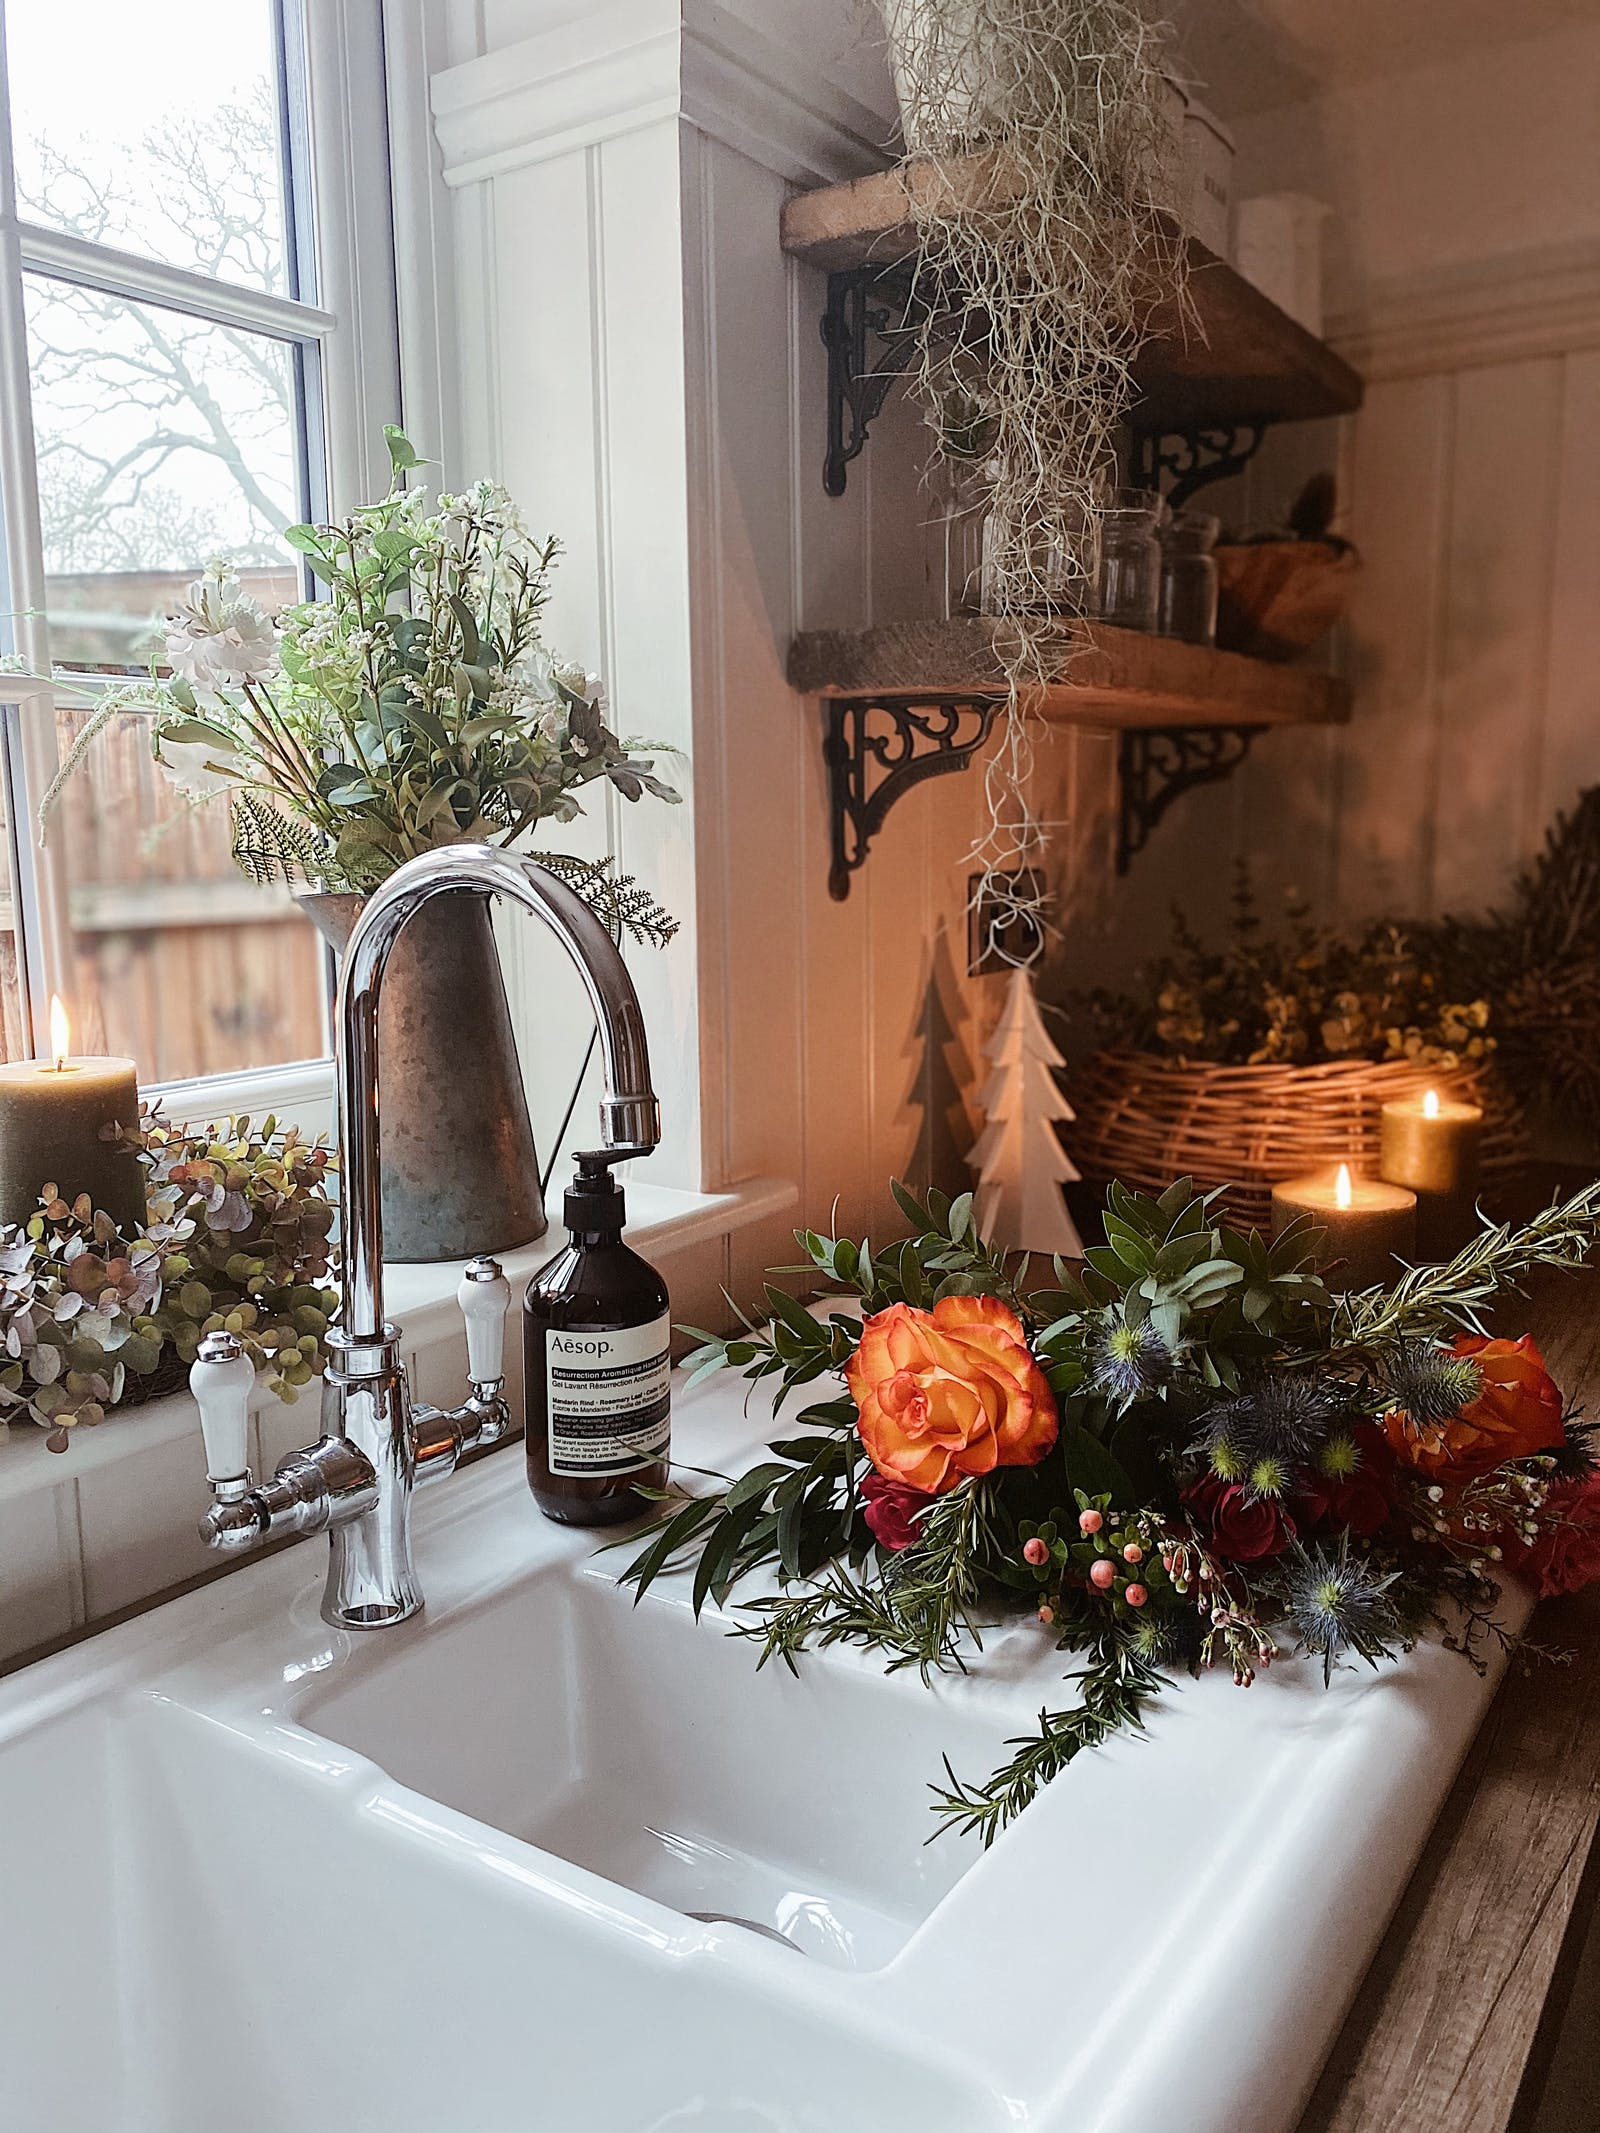 Kitchen sink with soap and fresh flowers